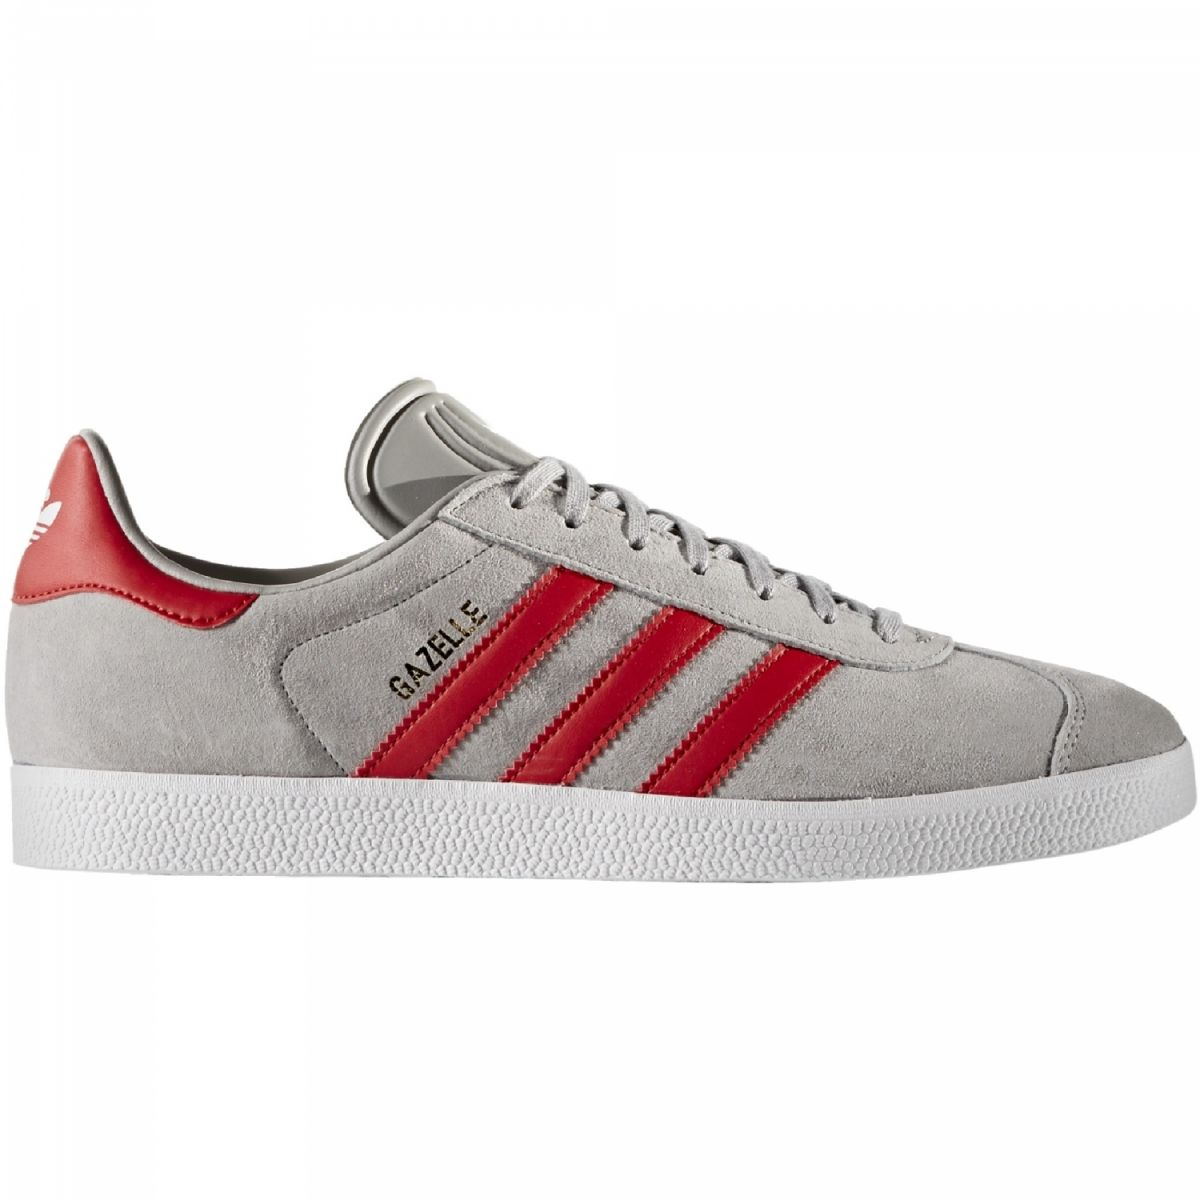 adidas originals gazelle sneaker herren schuhe grau rot bb5257 sport klingenmaier. Black Bedroom Furniture Sets. Home Design Ideas